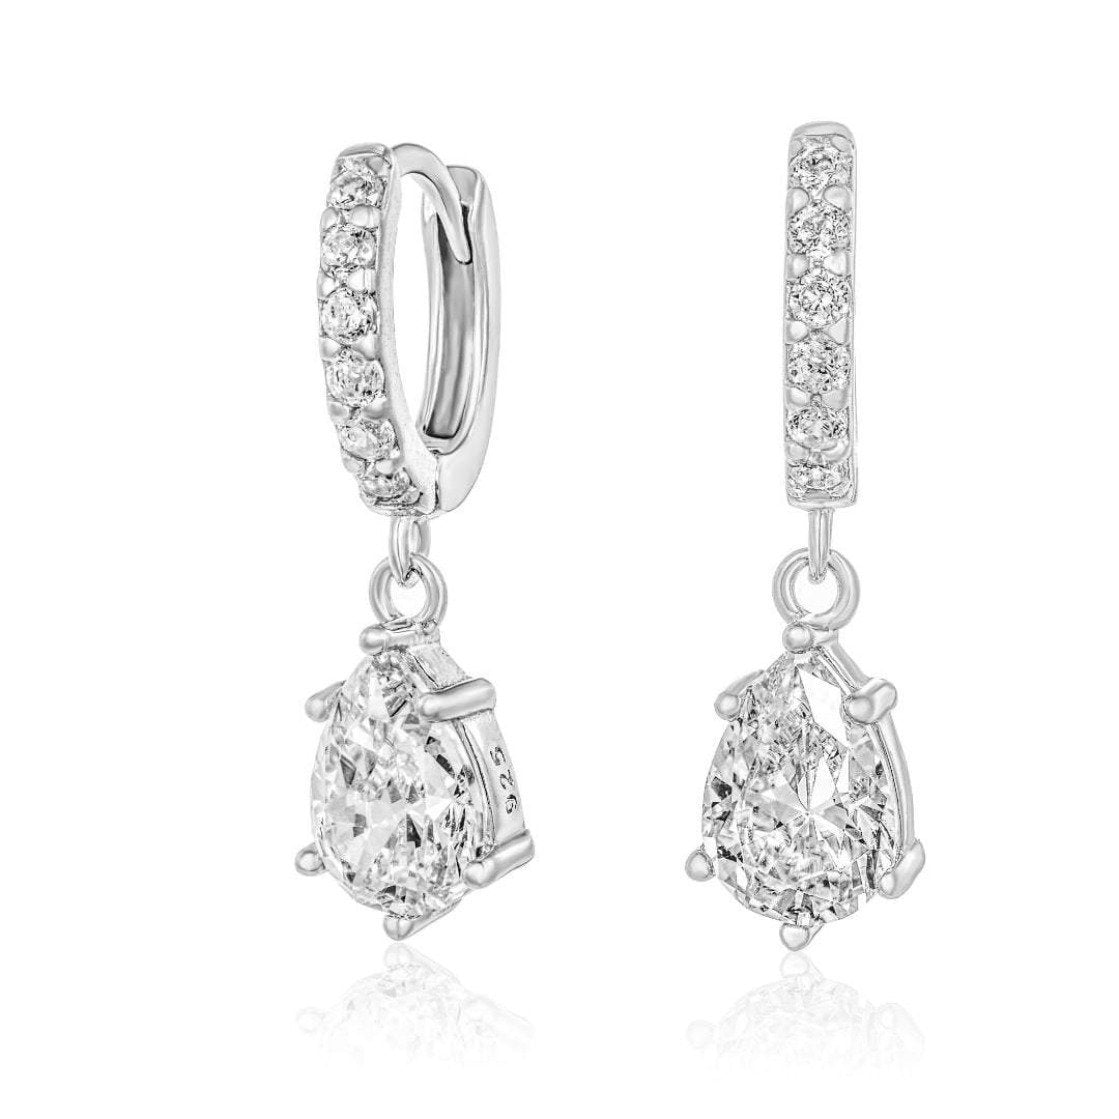 Huggie Snowdrop Earrings/18K White Gold & Premium Cubic Zirconia - infinityXinfinity.co.uk